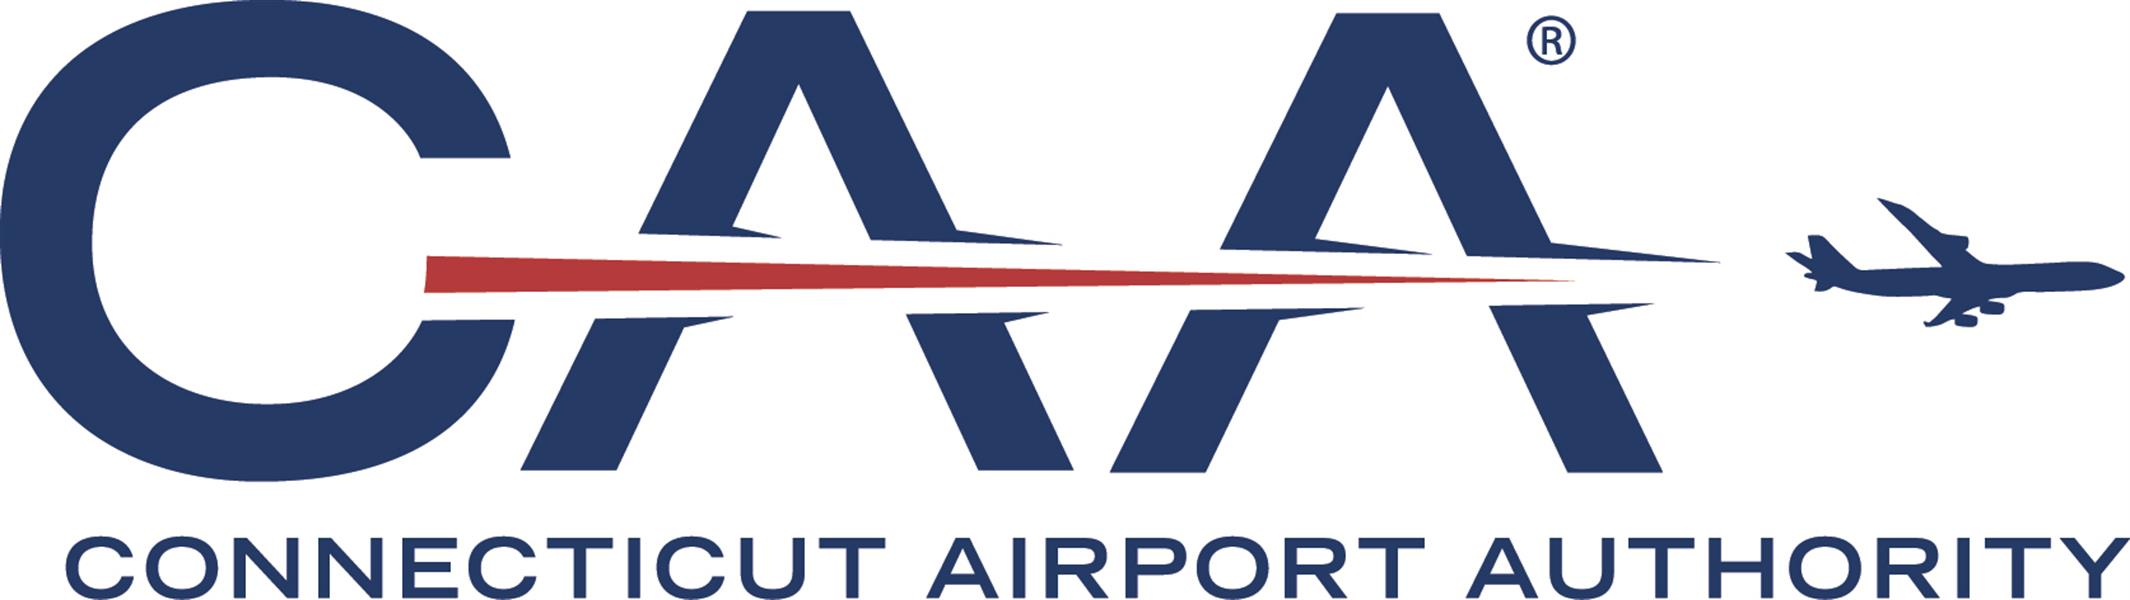 The Connecticut Airport Authority (CAA)